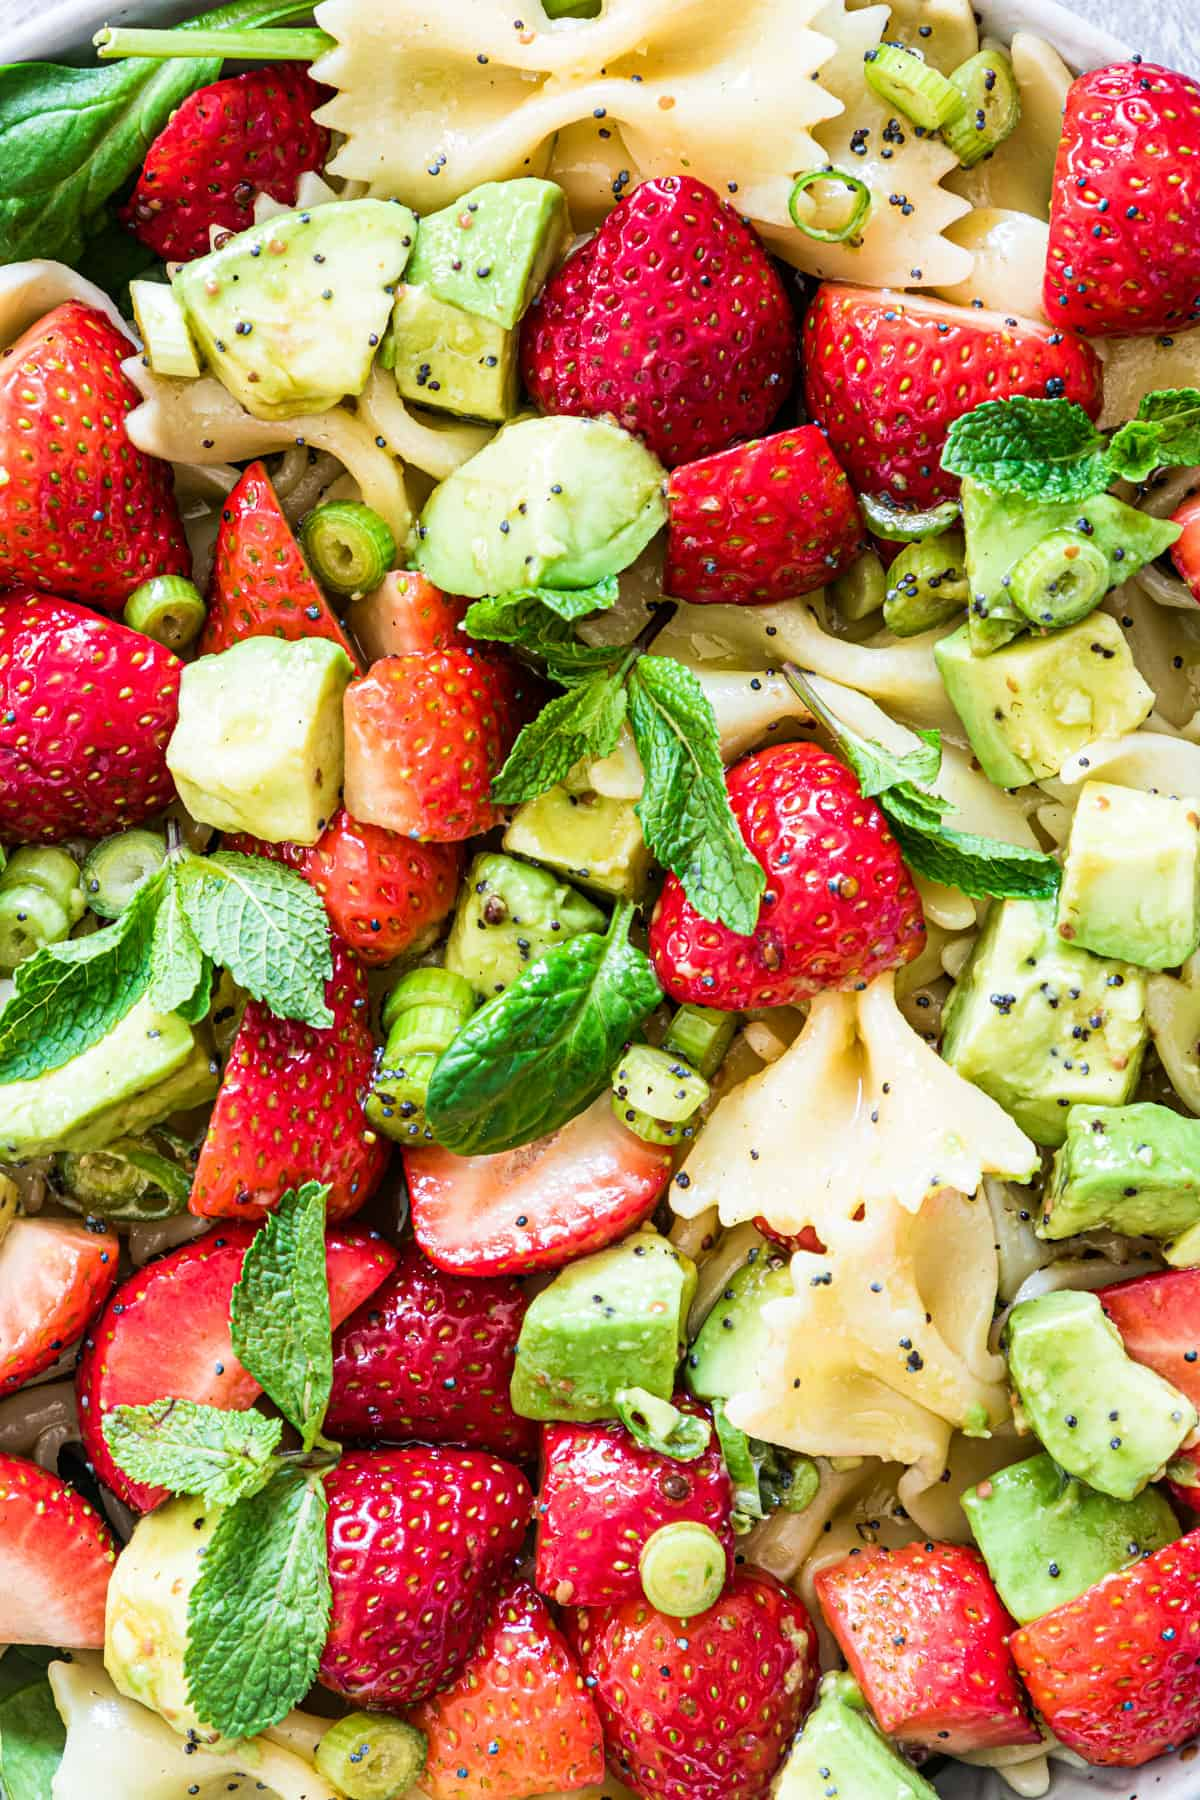 close up view of the ingredients used to make strawberry avocado pasta salad